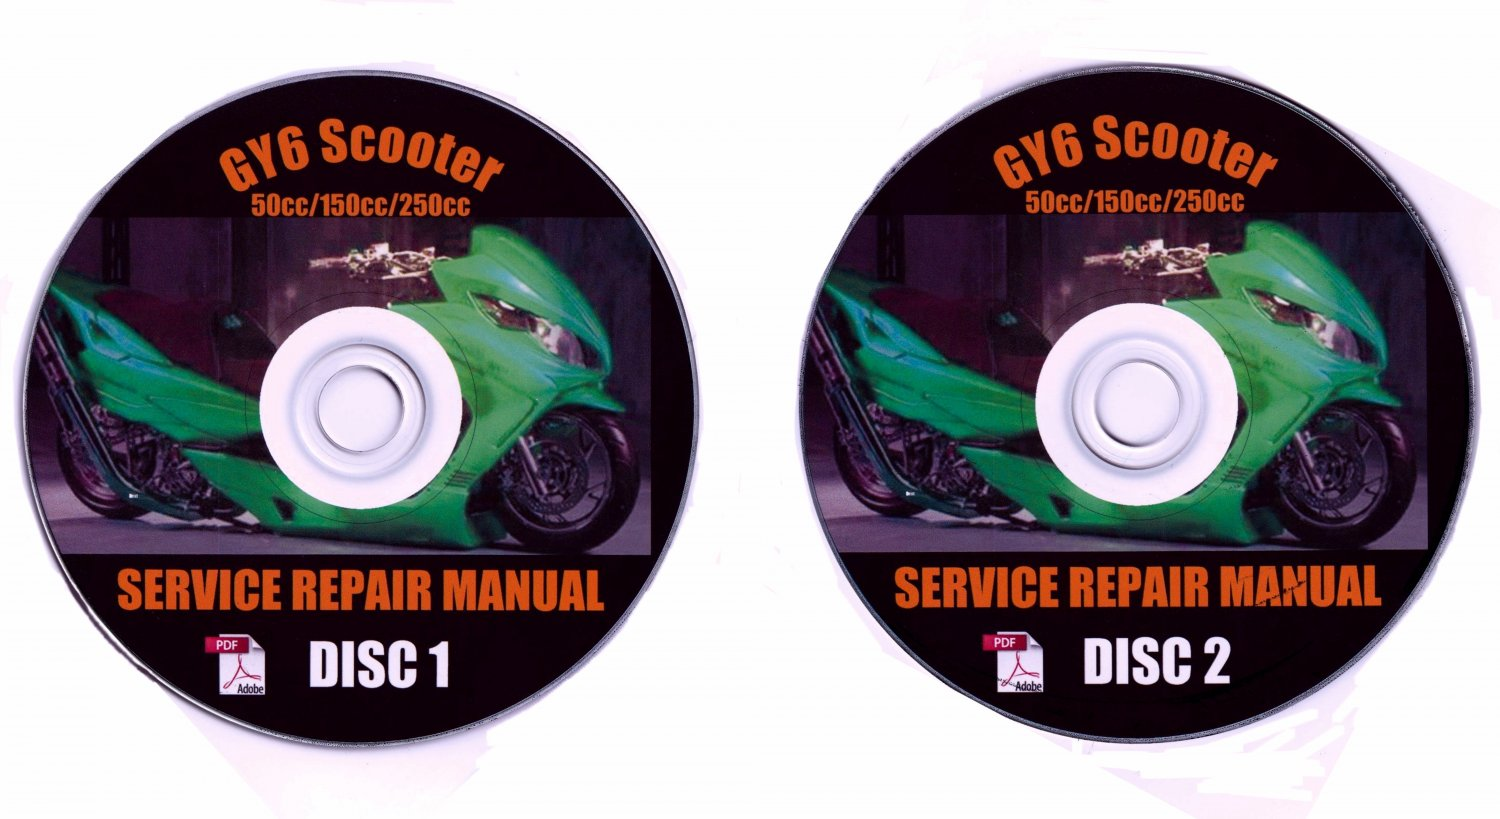 Chinese Scooter 50cc 150cc 250cc GY6 QMB Service Repair Manual MC Zuma GMI  Bahama all MC Models